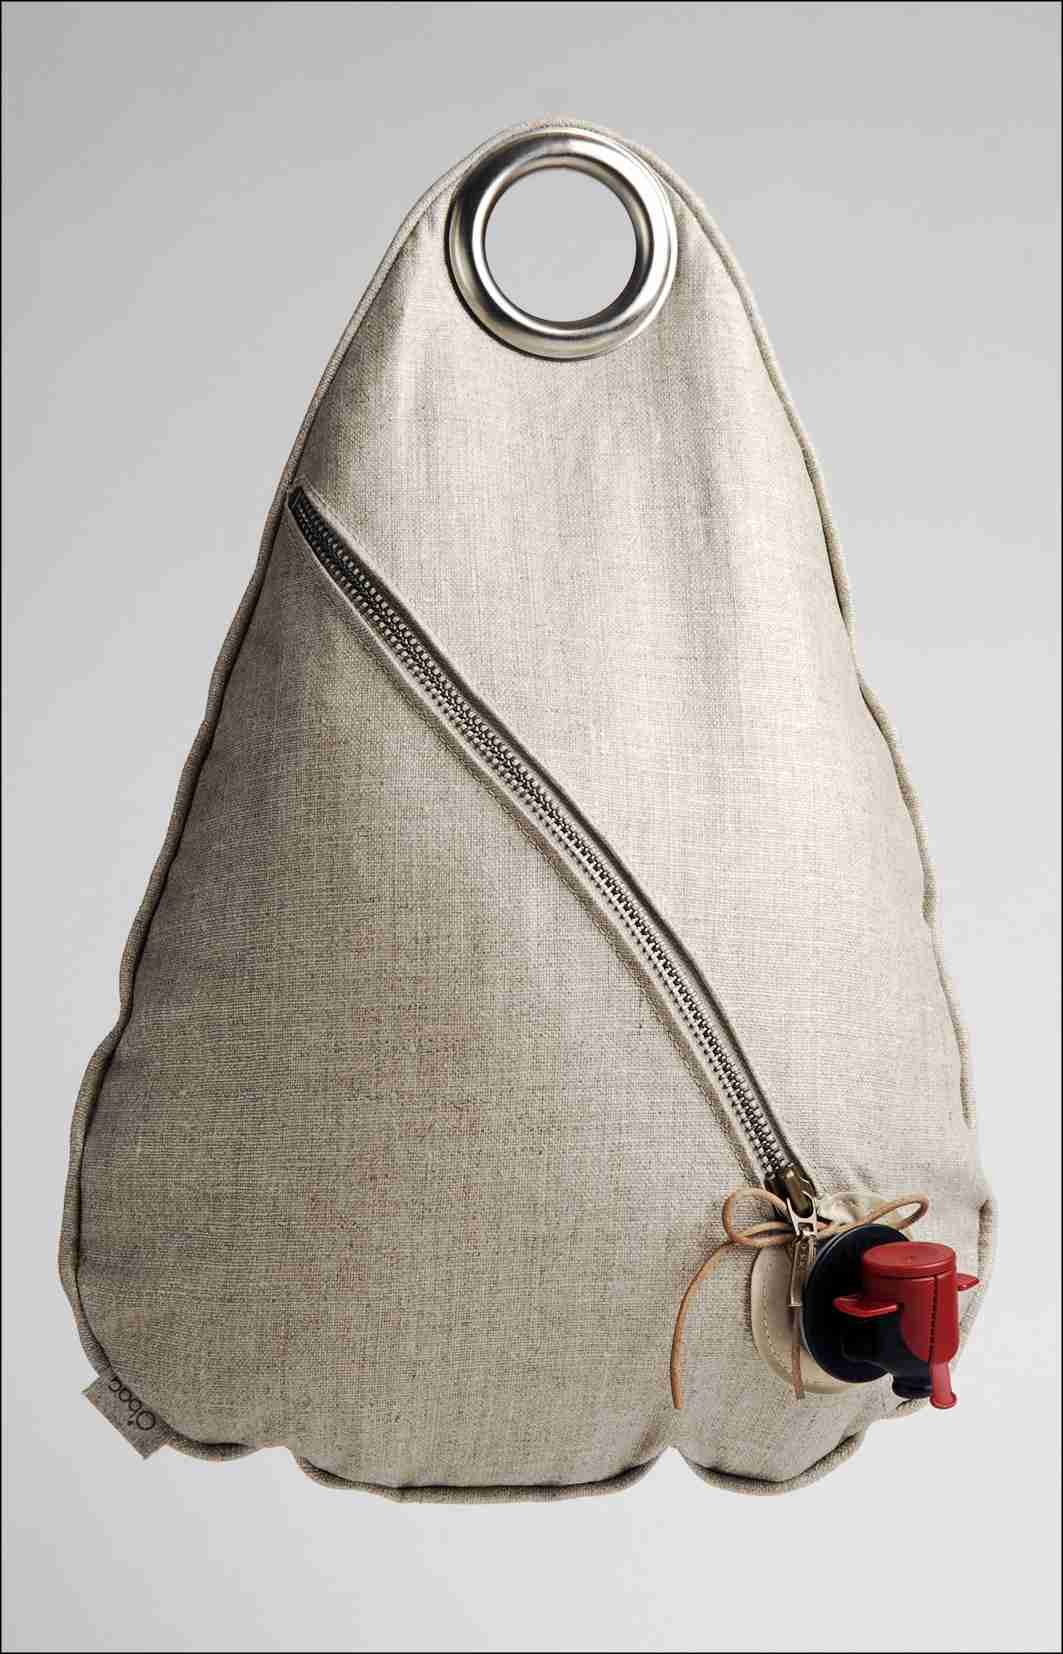 The Obag - 3L Wall Hanging Wine Bag in Natural Colour with Hook